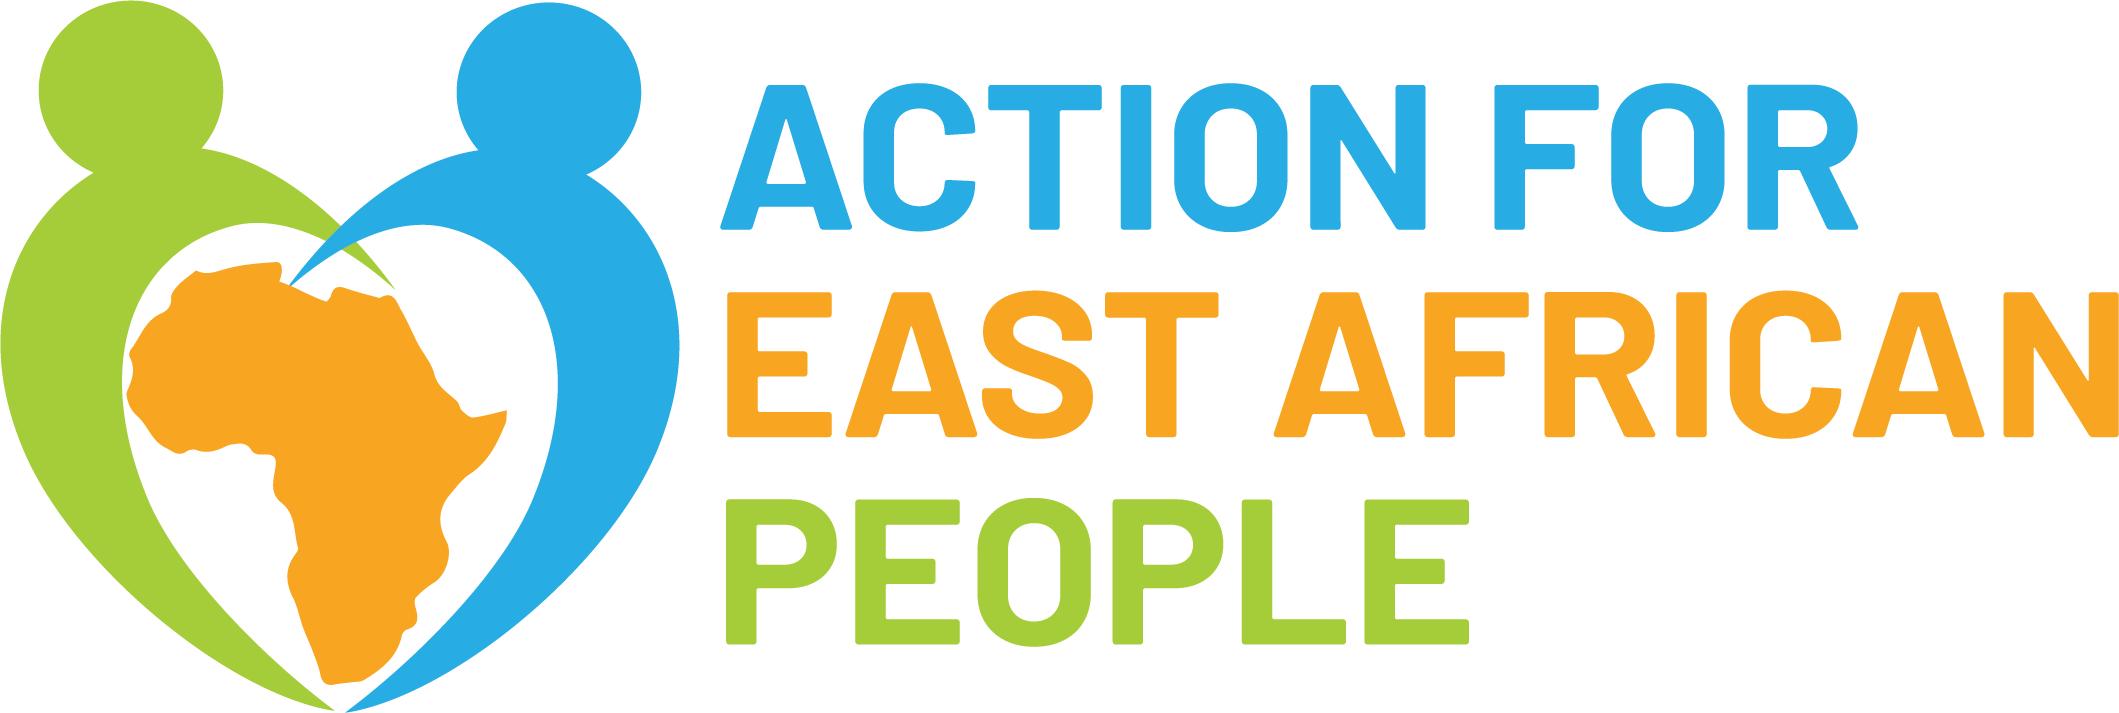 Action for East African People